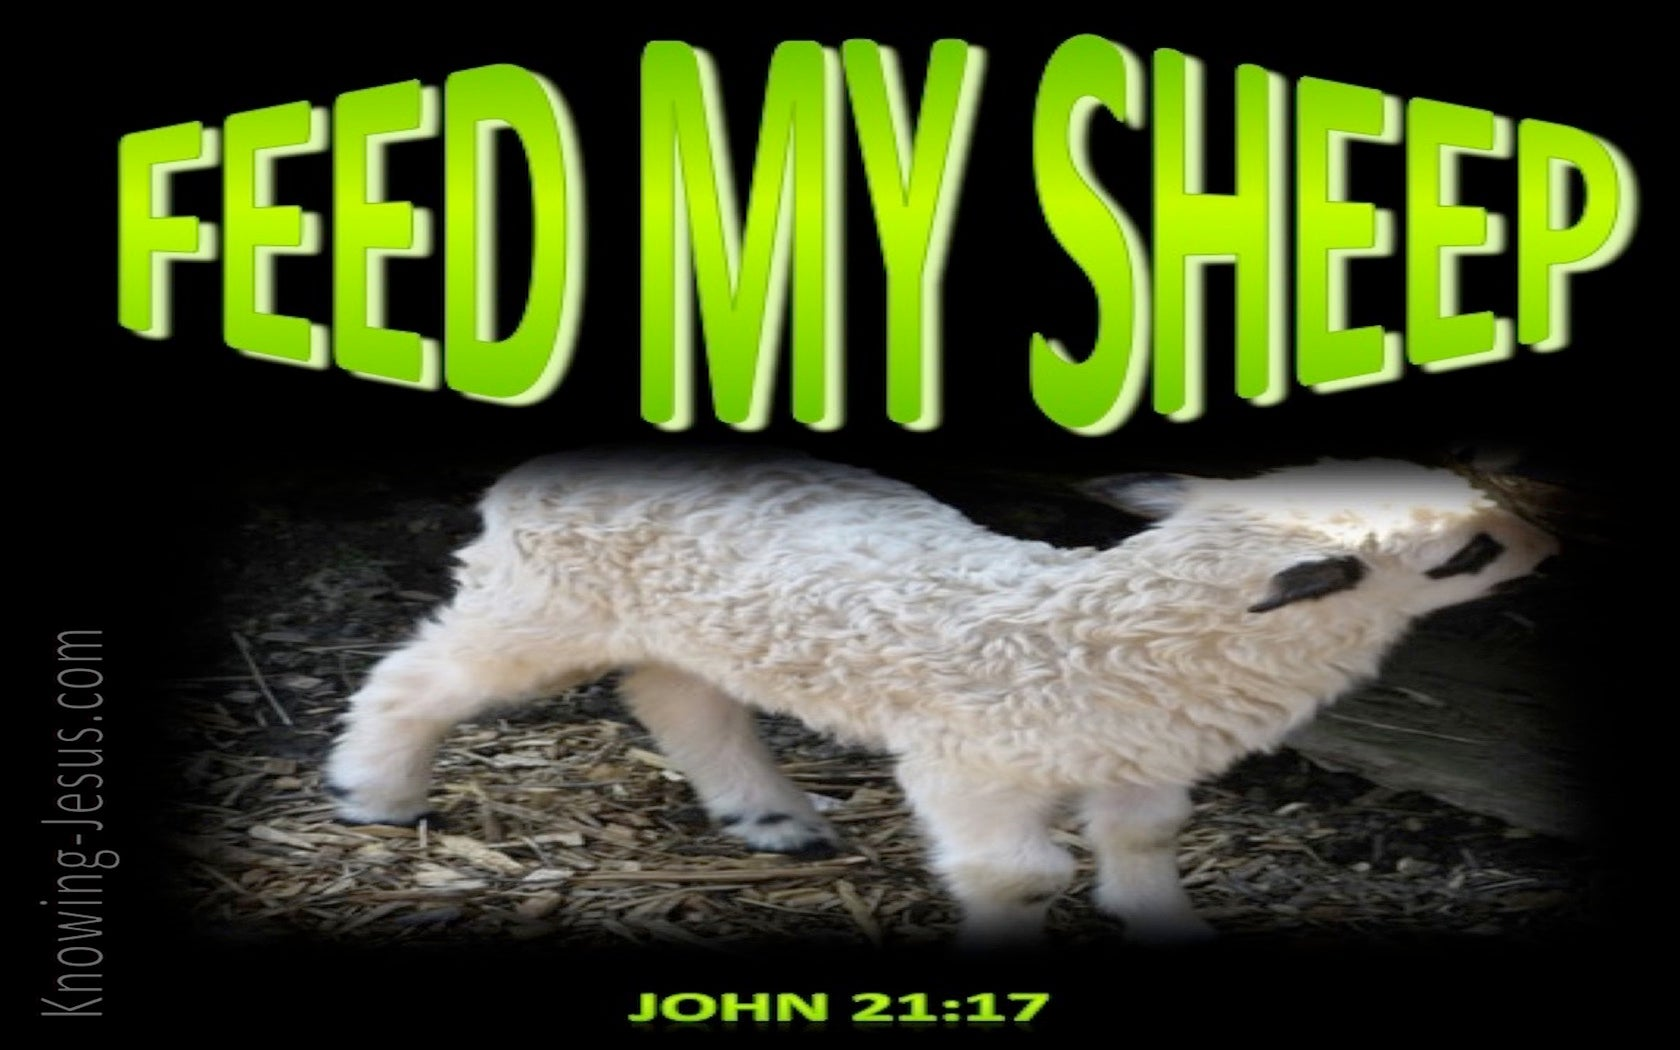 John 21:17 Feed My Sheep (green)